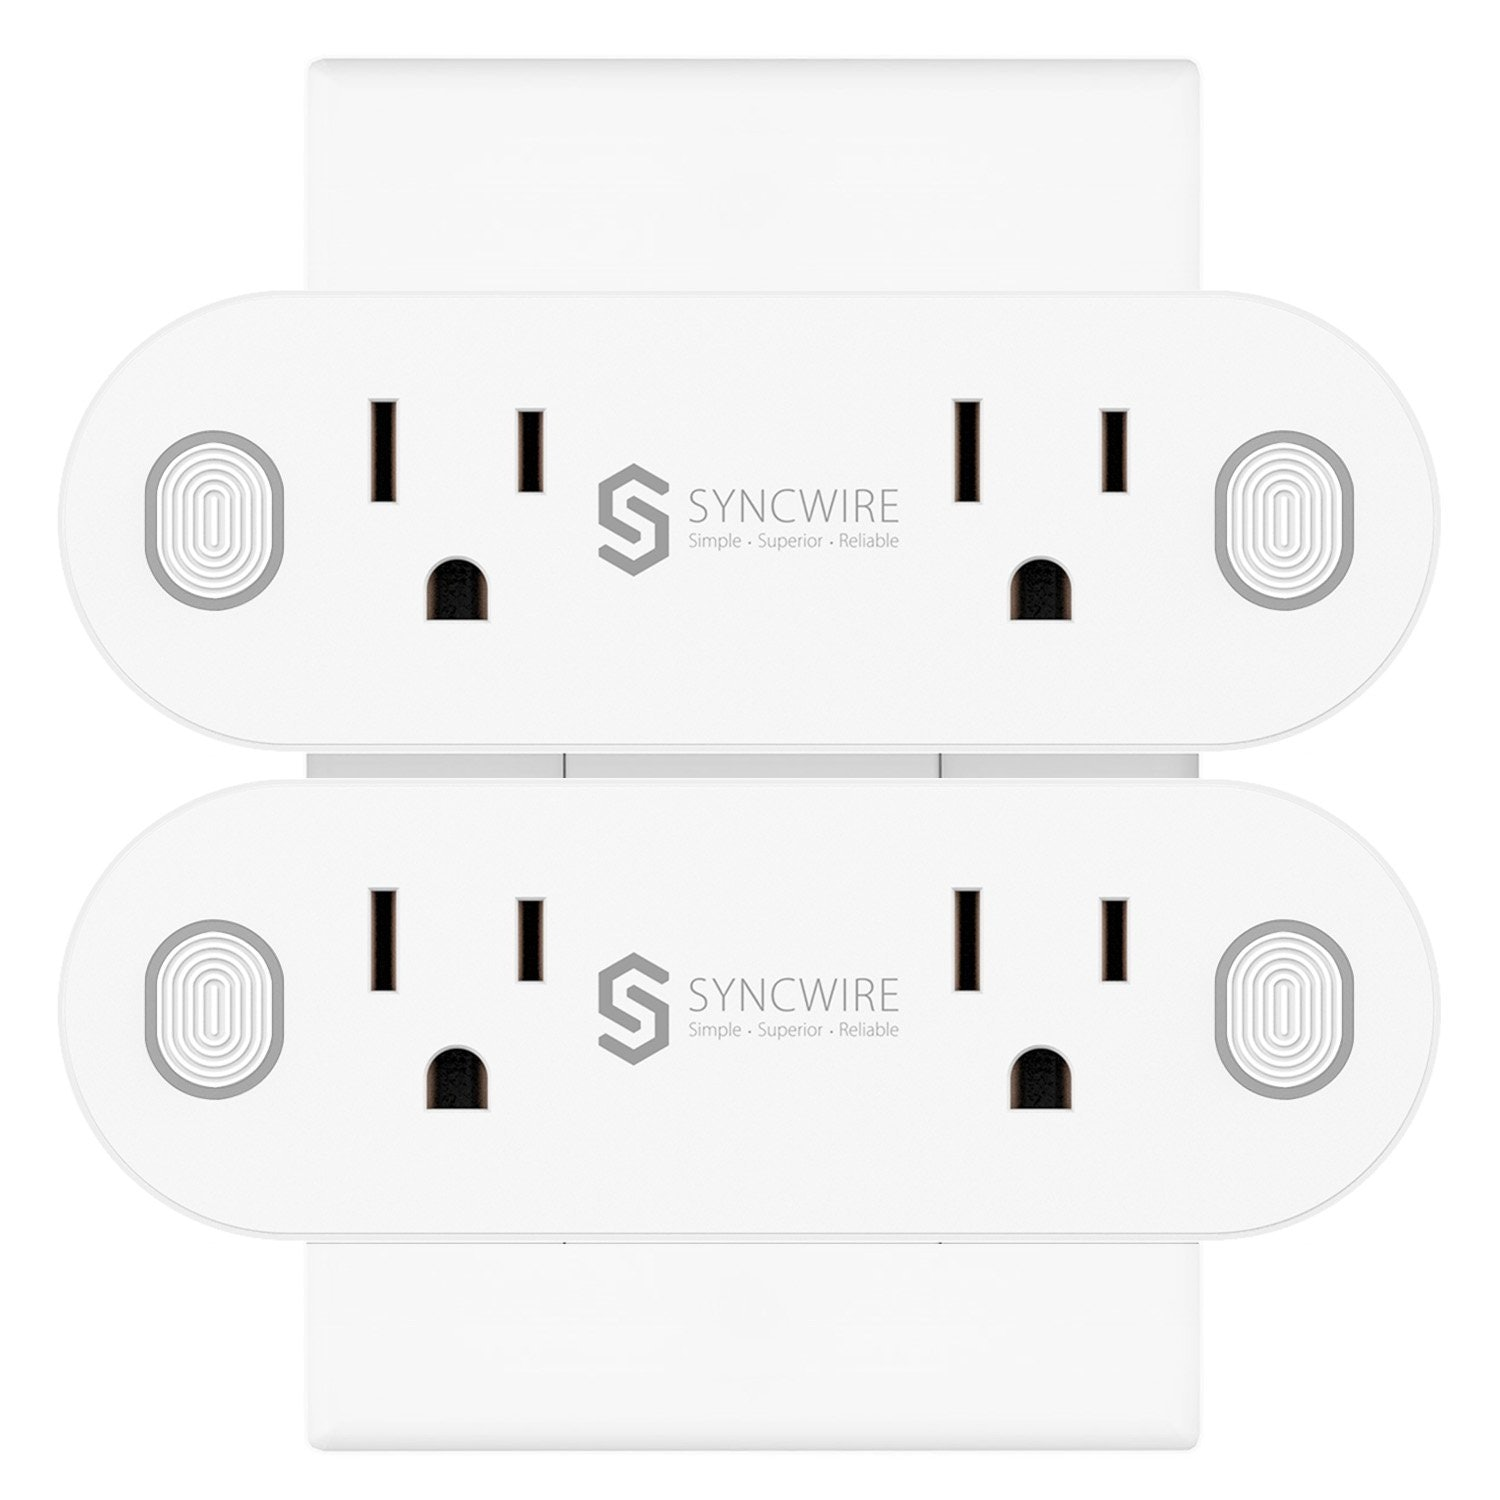 Syncwire [2 in 1] Mini Wi-Fi Smart Plug - [2-Pack] 16A Smart Outlet with Timing and Energy Monitoring Function, Compatible with Amazon Alexa, Google Assistant, IFTTT - ETL Listed, No Hub Required